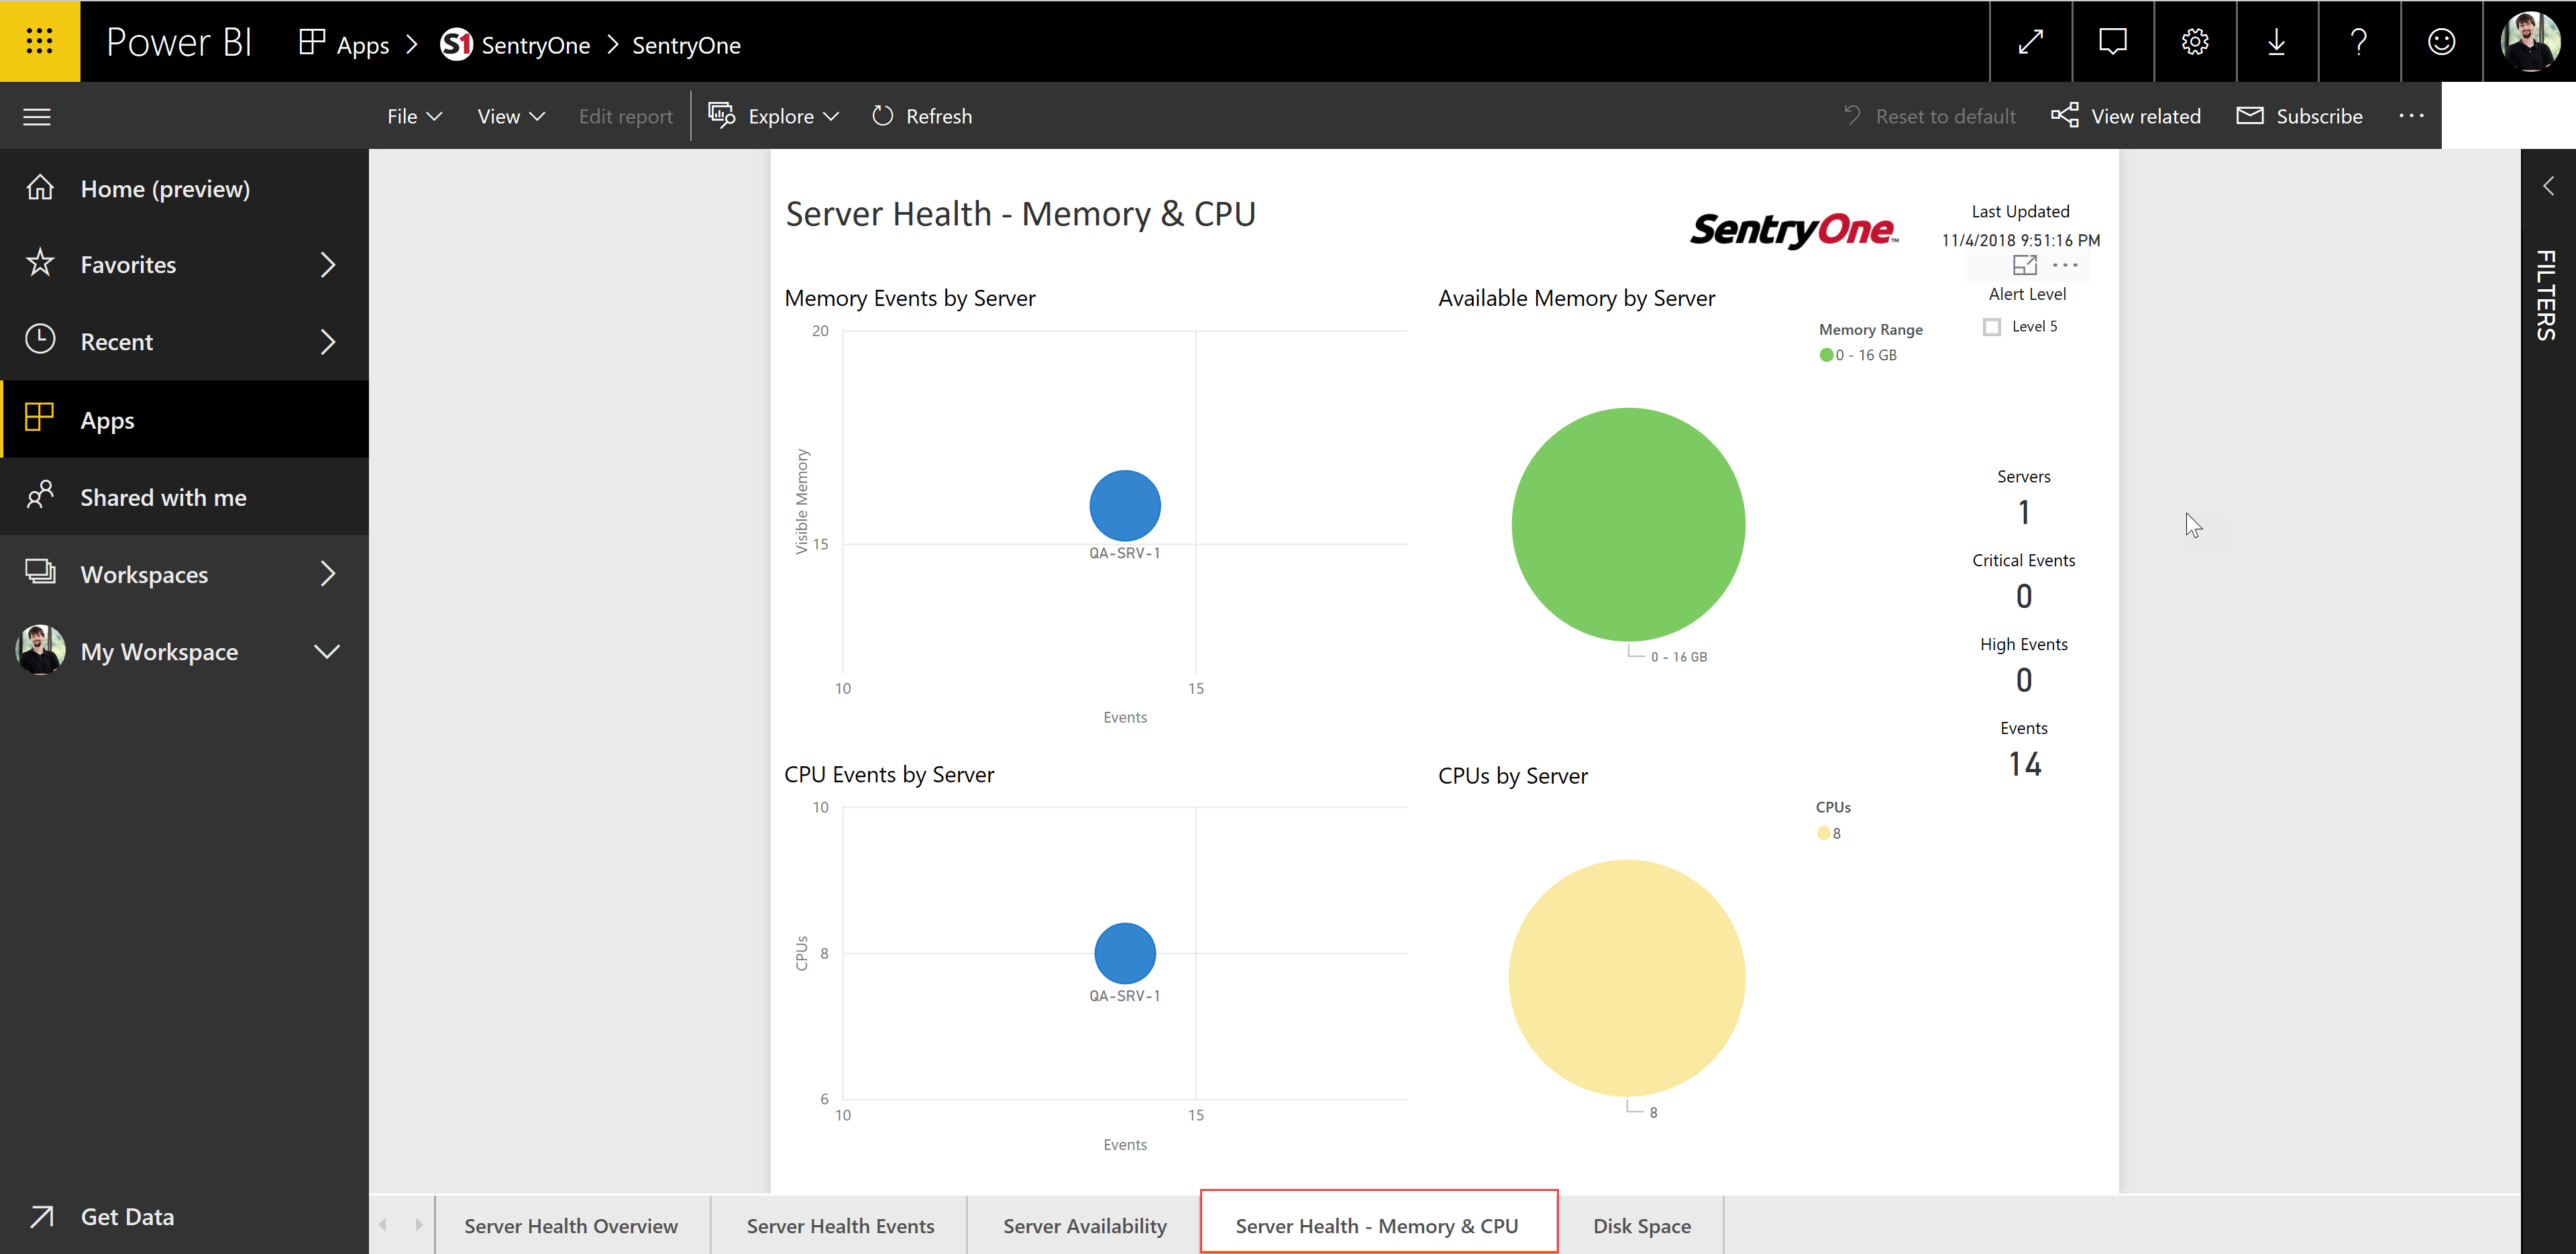 SentryOne Power BI app Server Health - Memory & CPU